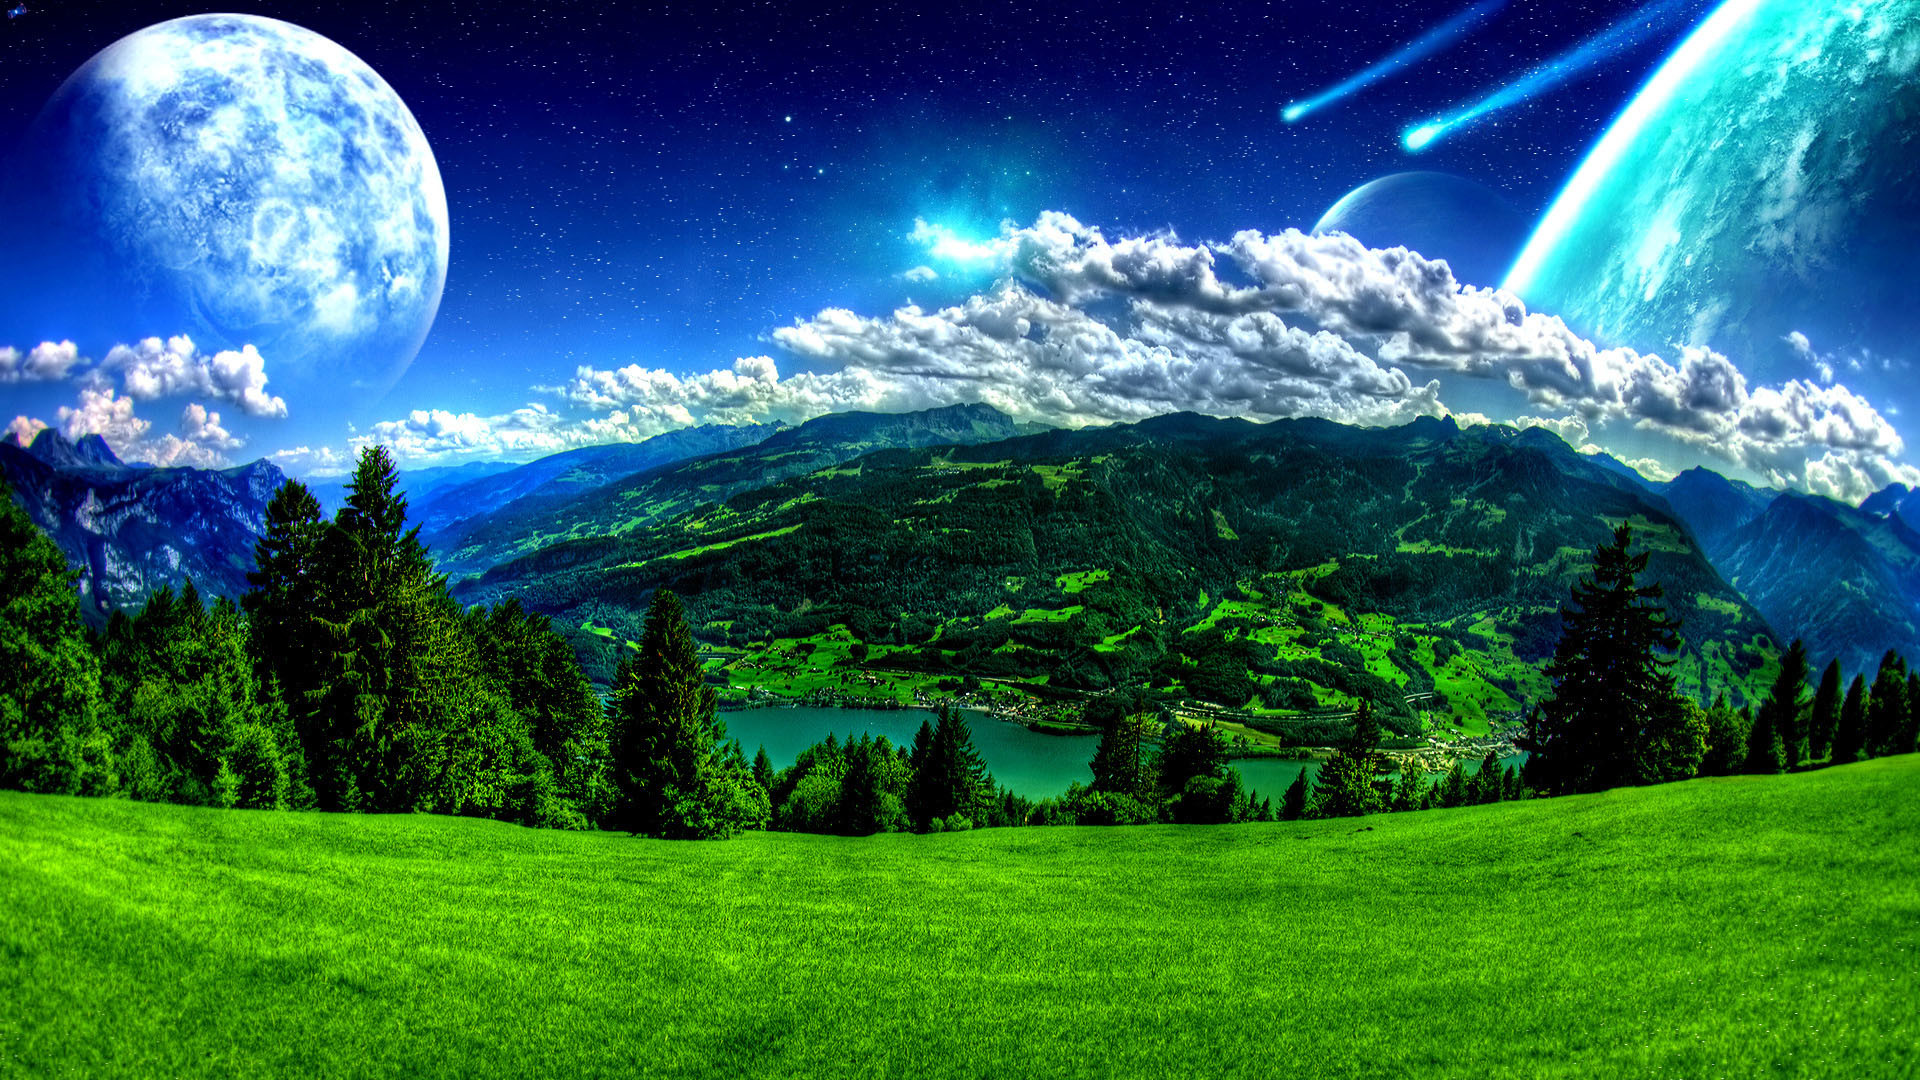 Fantasy Nature Wallpapers 74 Images